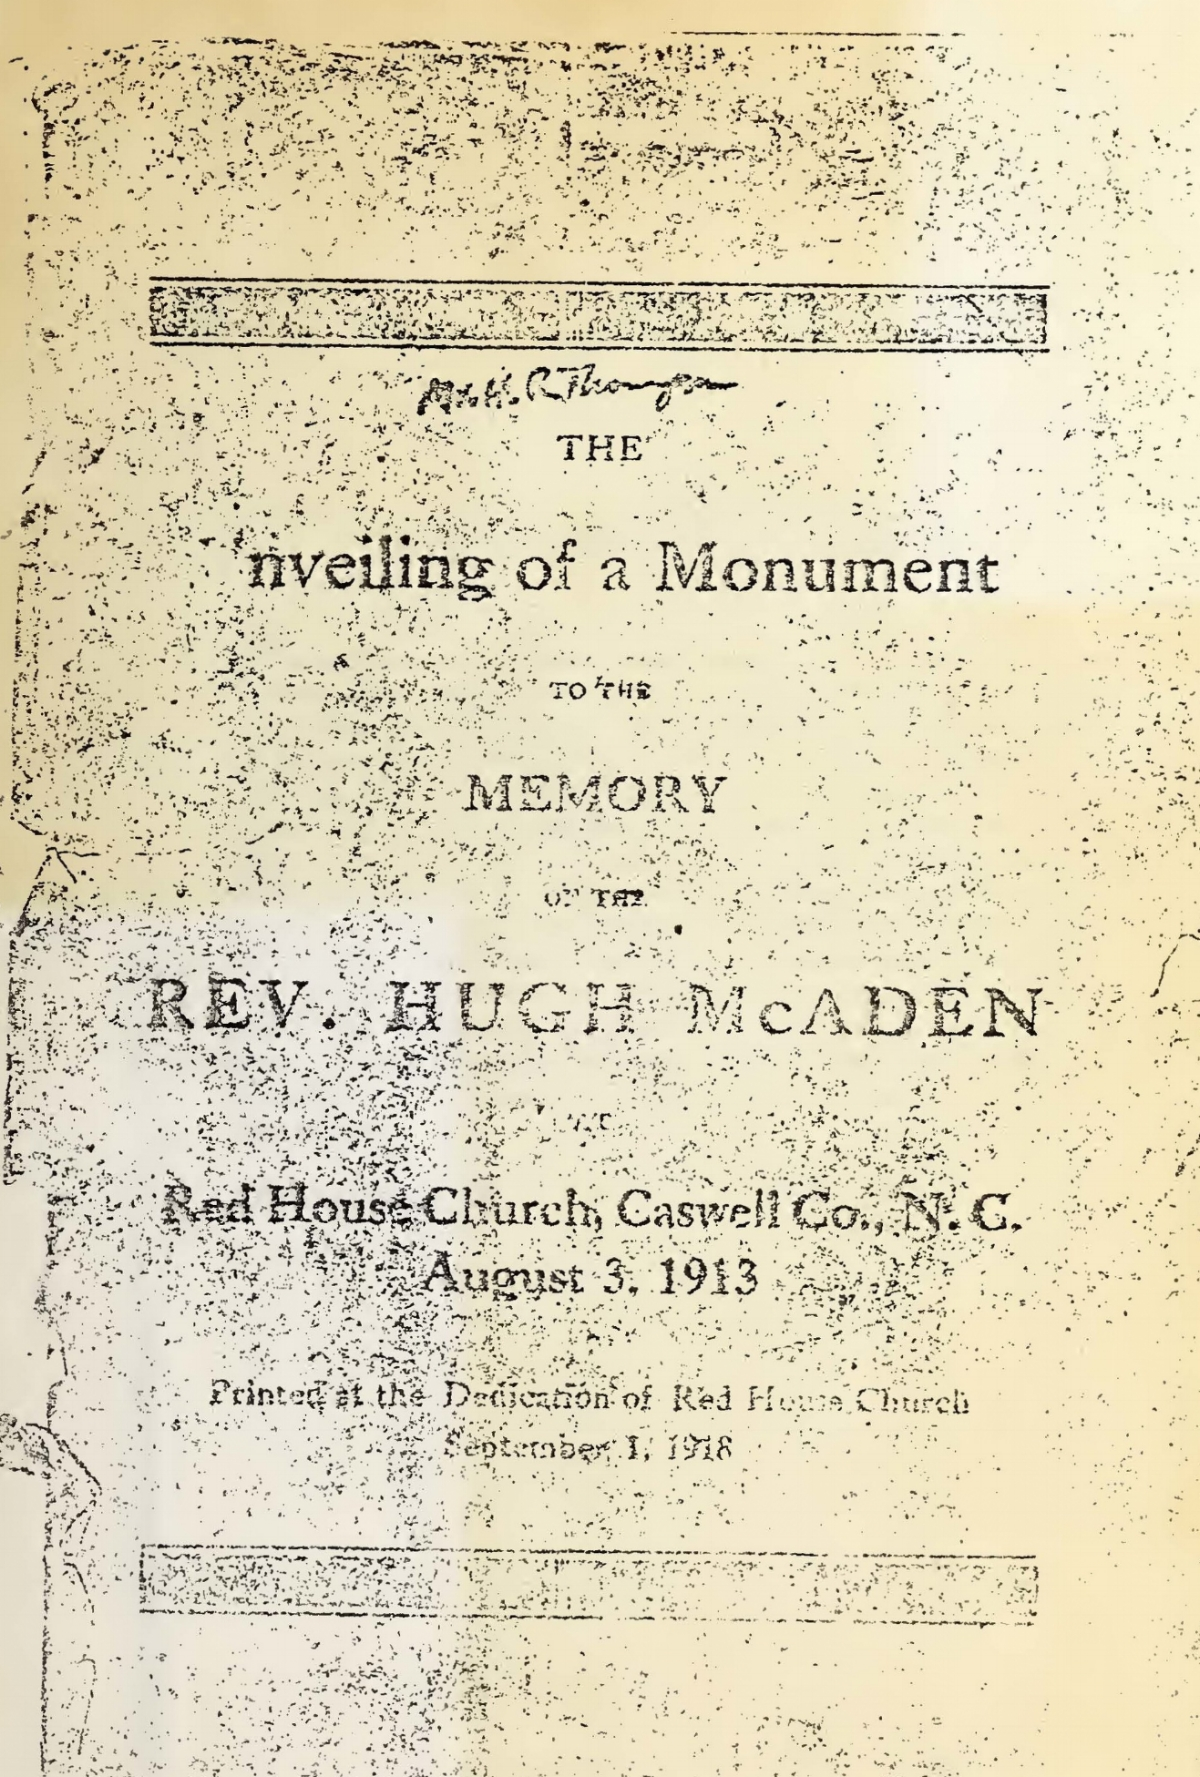 Craig, David Irwin, The Unveiling of a Monument to the Memory of the Rev. Hugh McAden Title Page.jpg